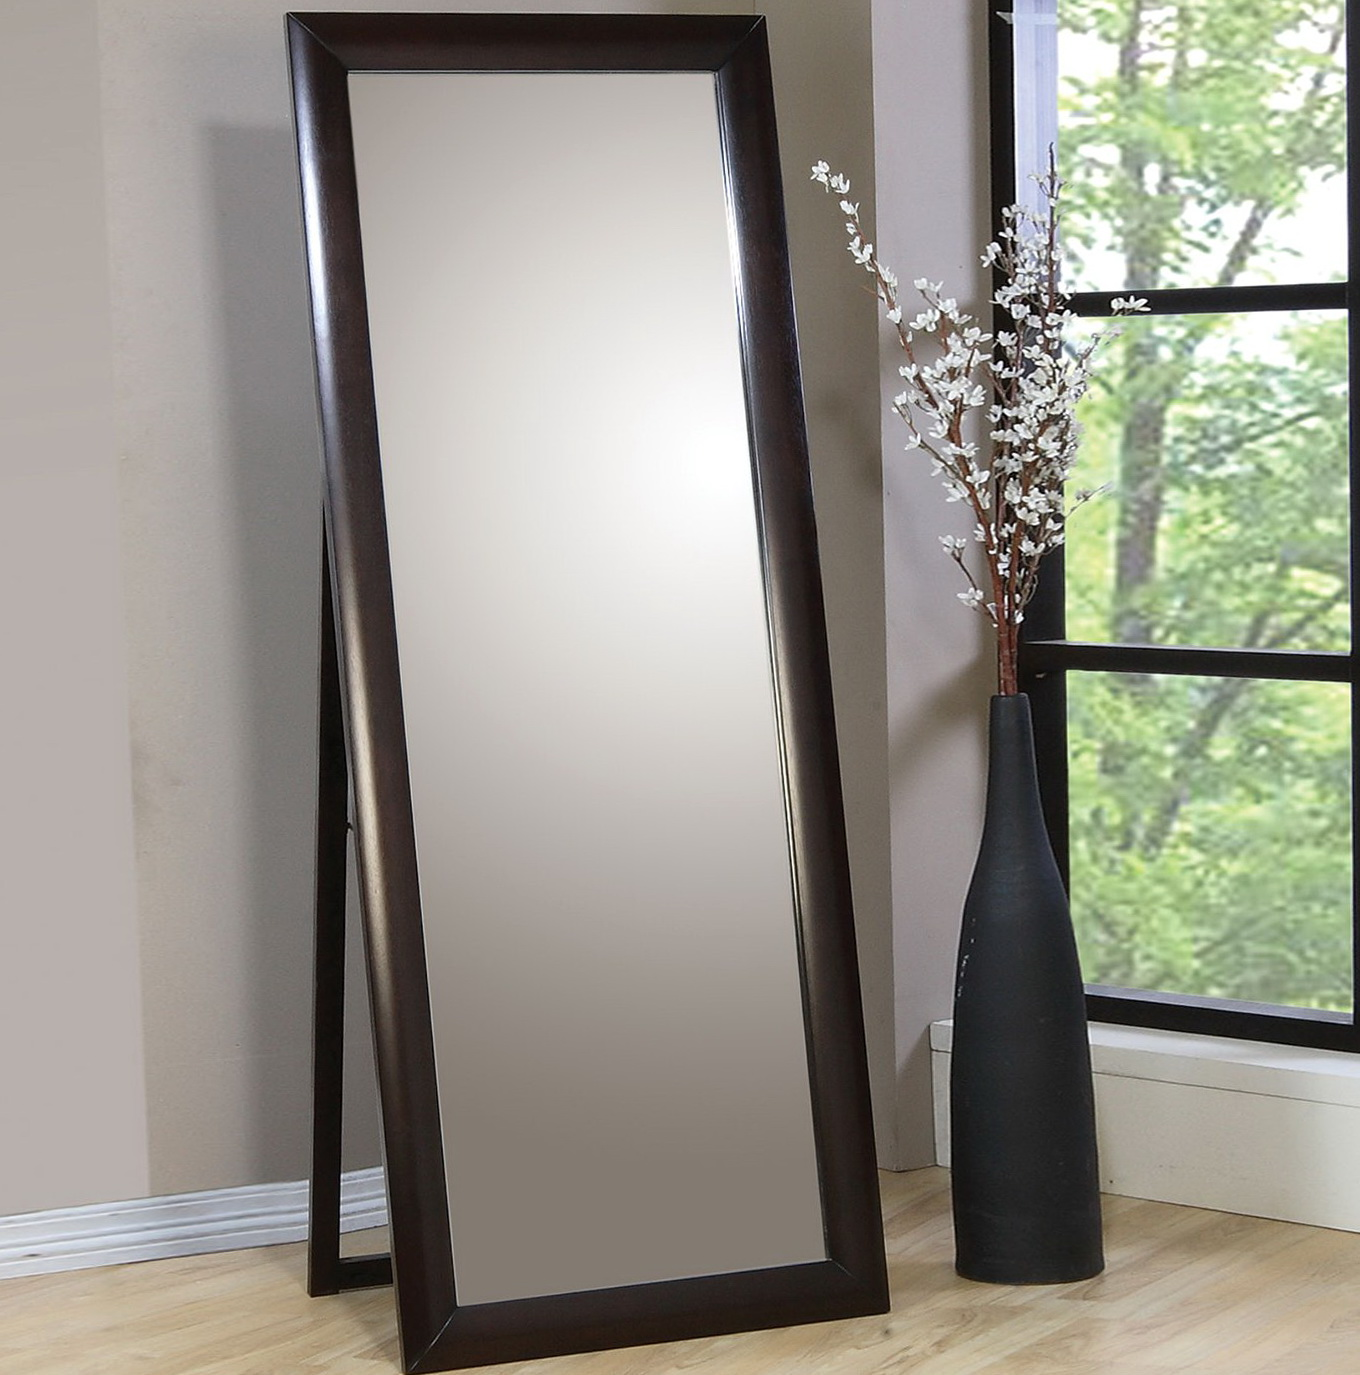 Cheap Floor Mirrors For Sale | Home Design Ideas